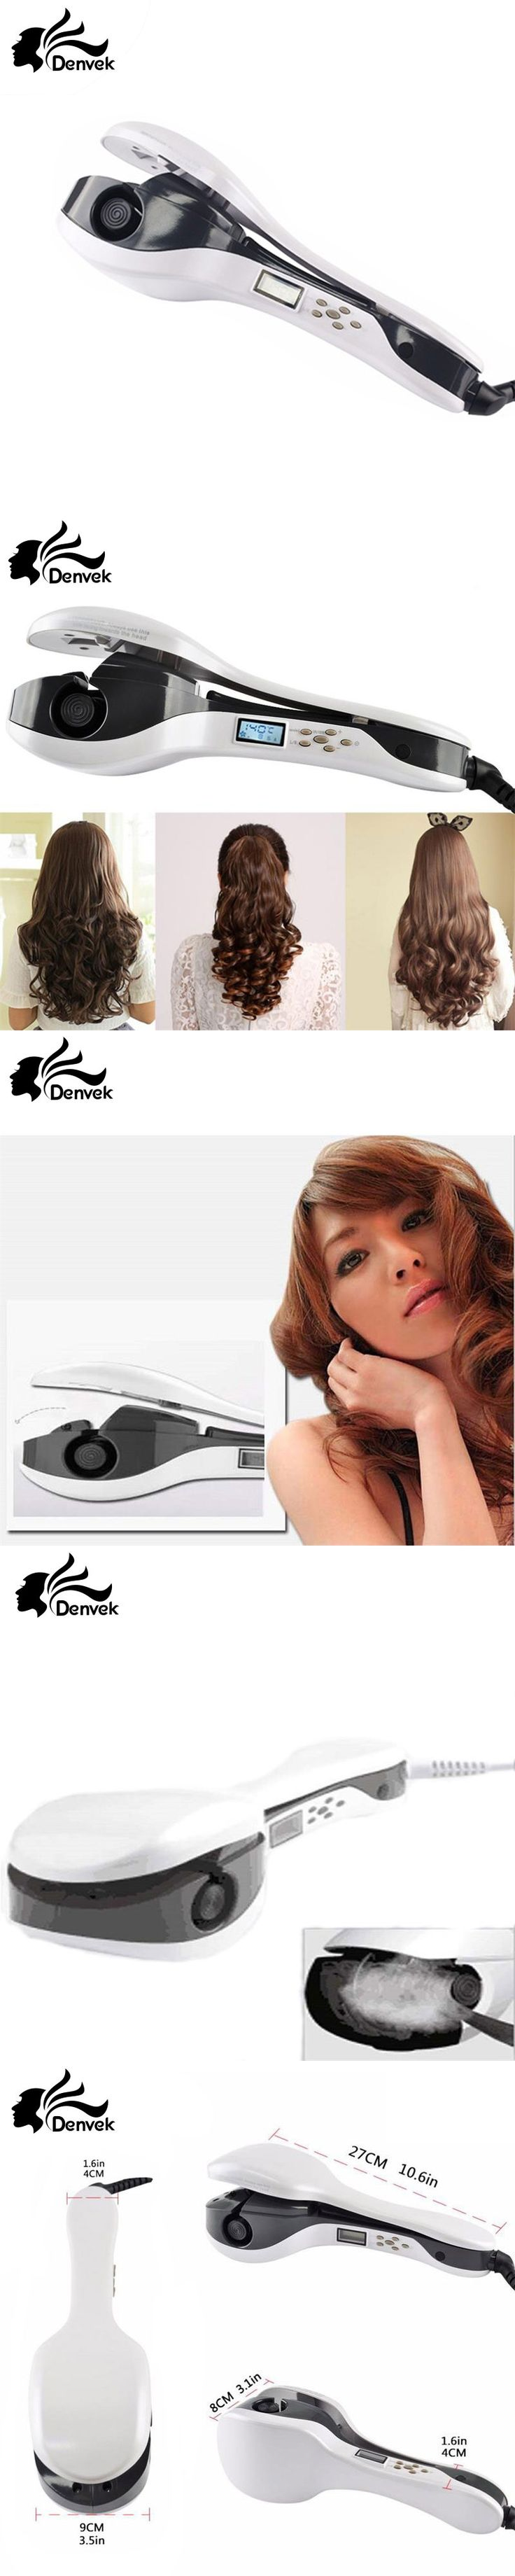 2017 New Hot Sale Professional Salon PTC Heating  White Color Ceramic Negative Ions Steam Automatic Hair Curler Hair Style Tools